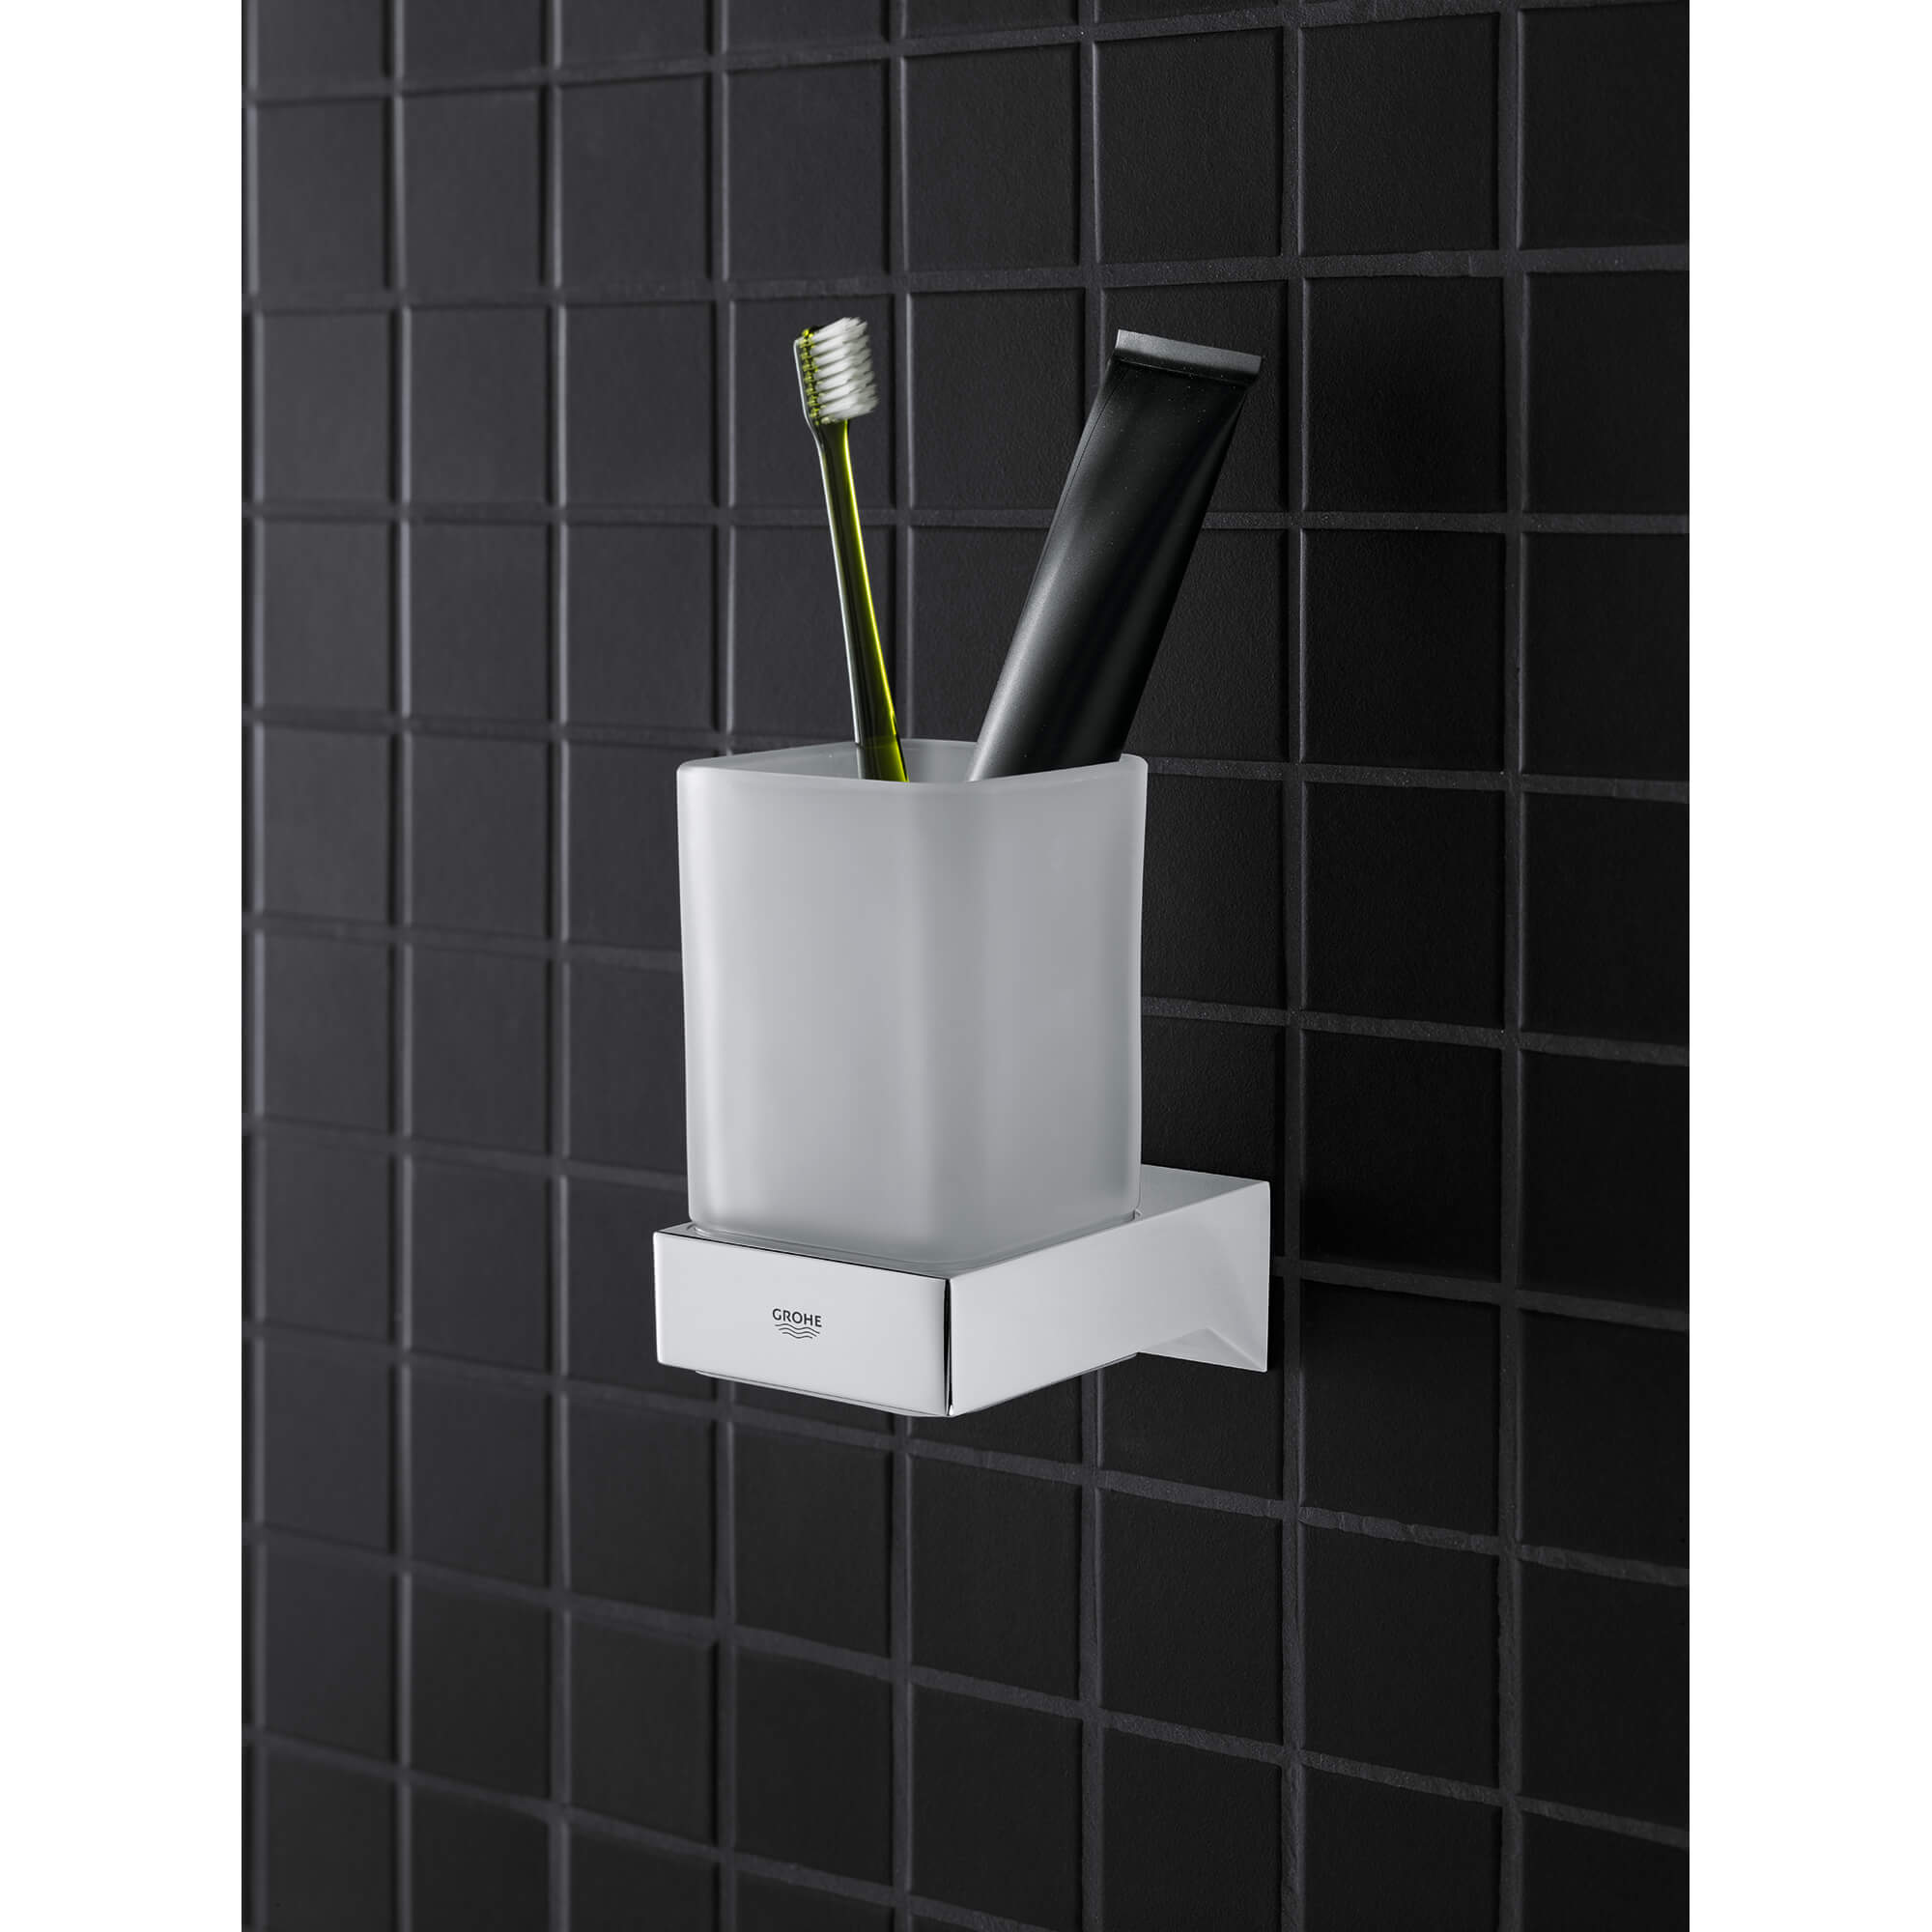 Selection cube toothbrush cup holder wall mount.